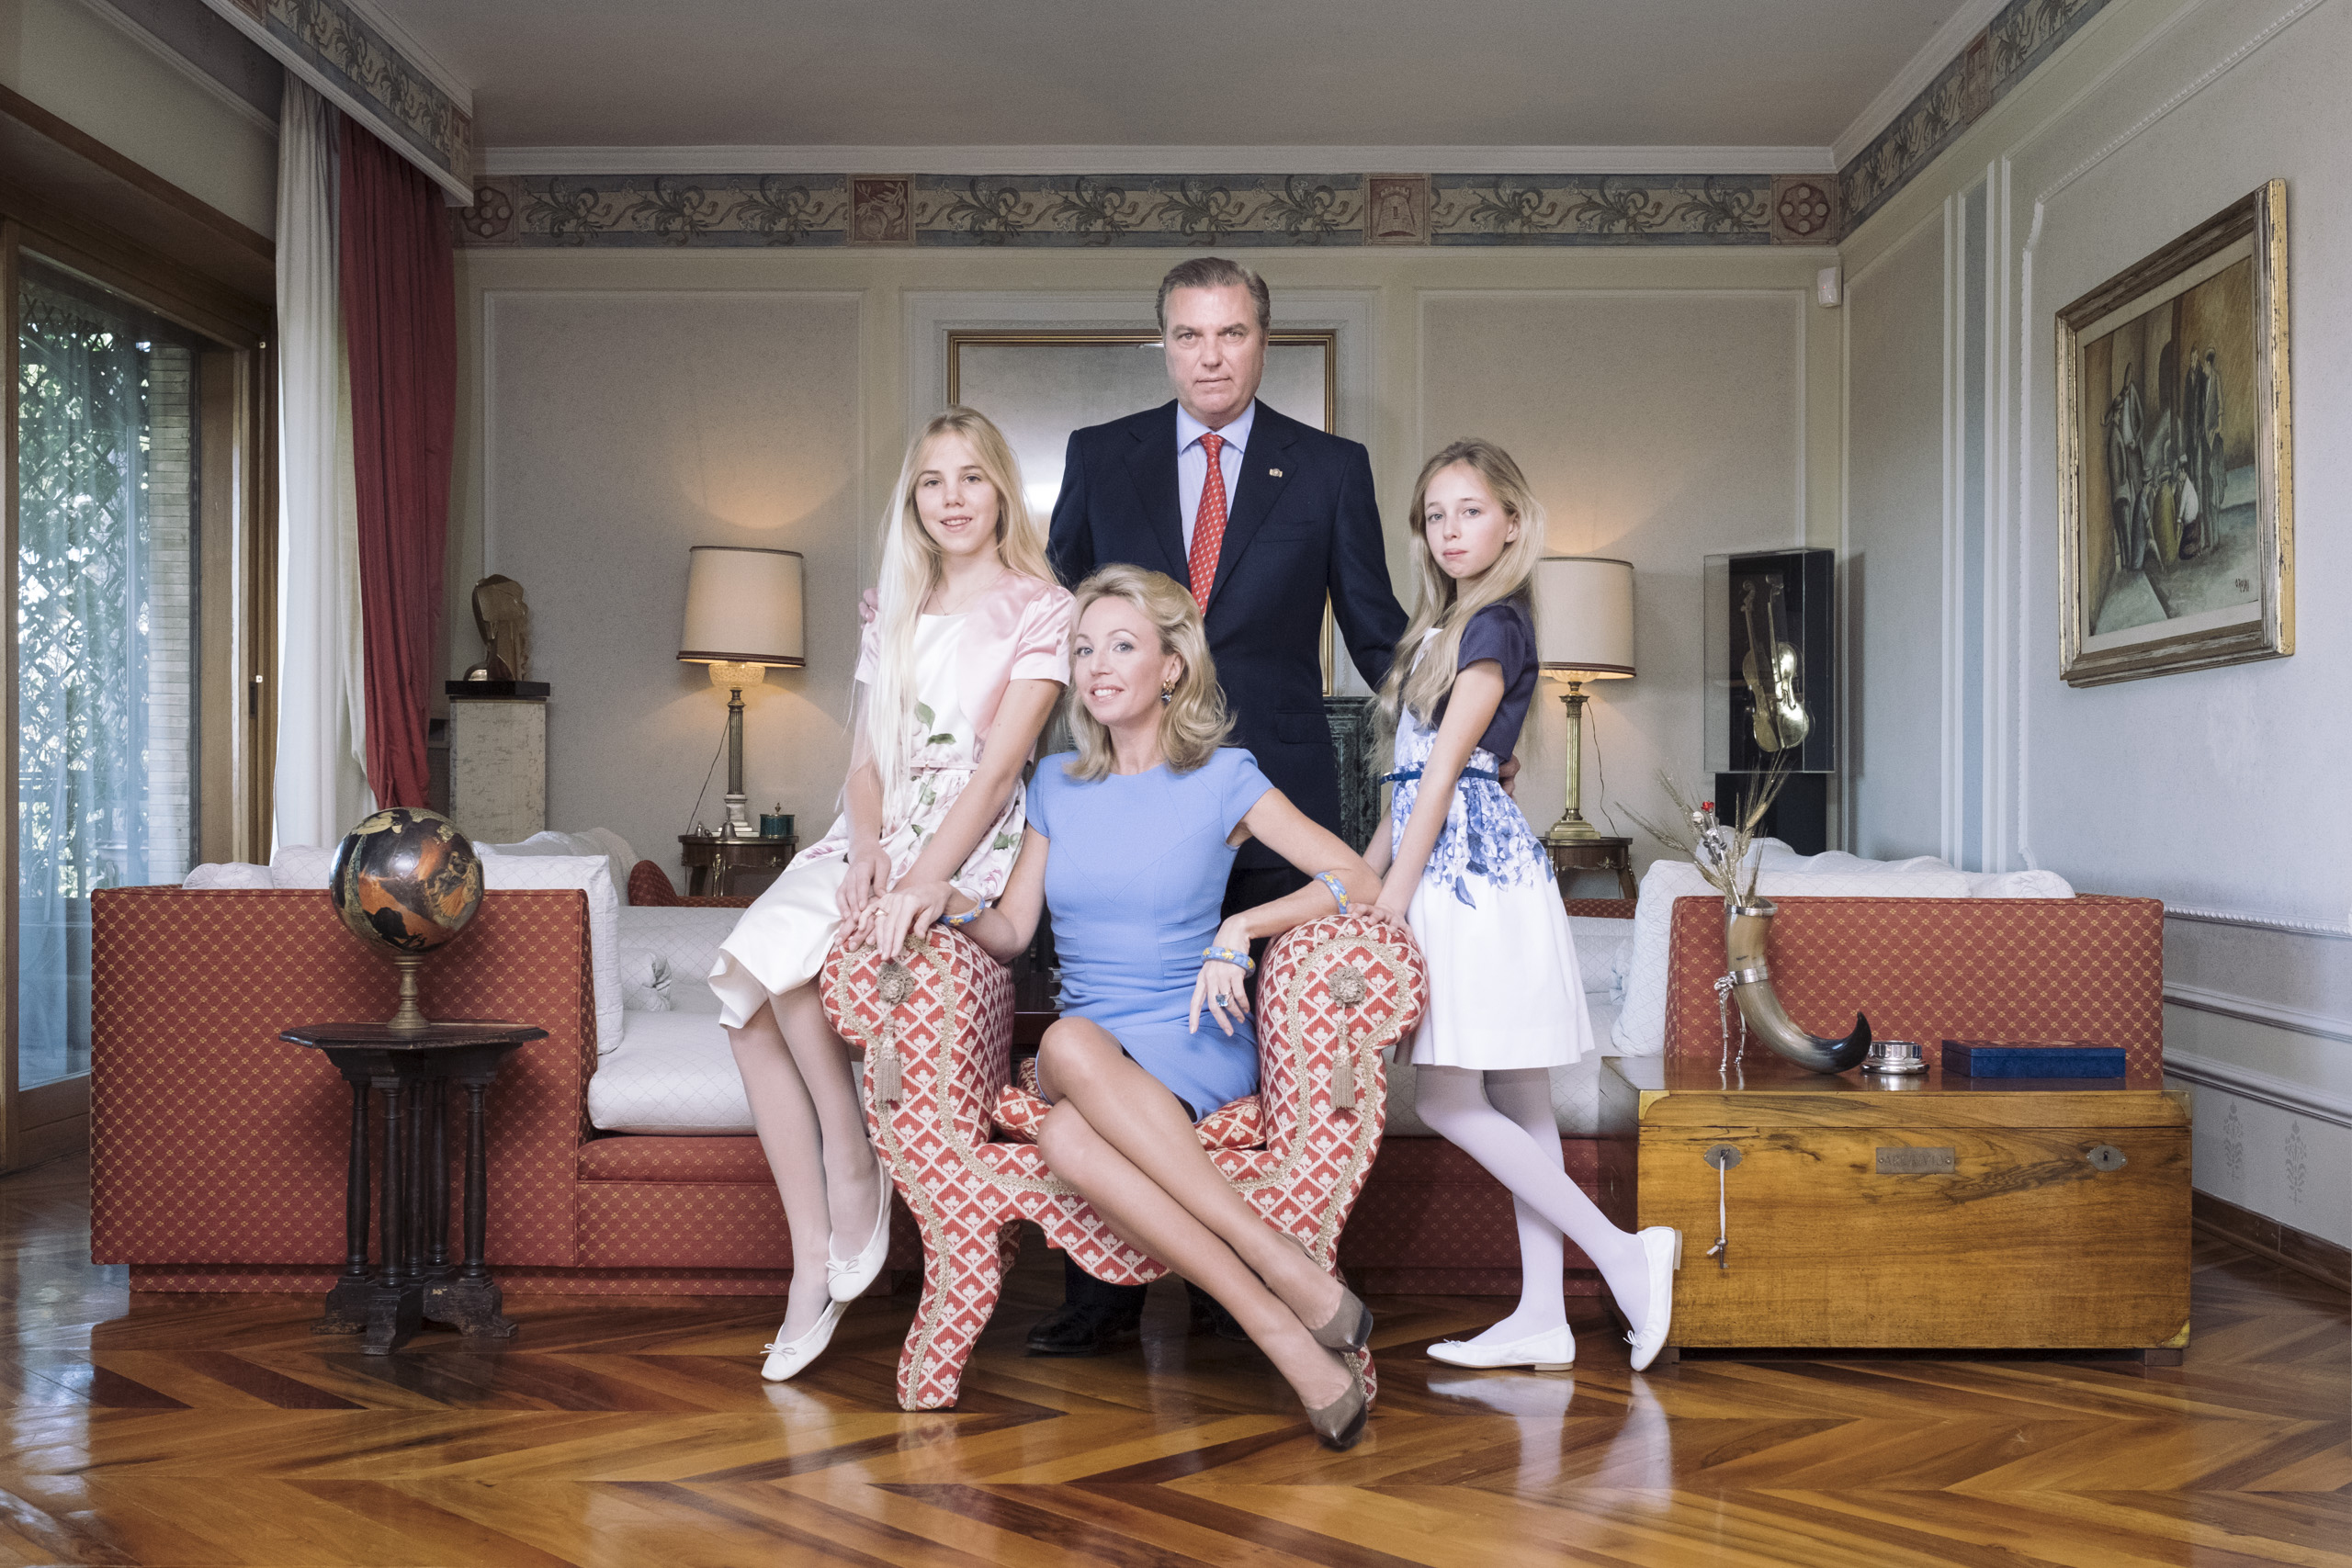 The royal family of Bourbon-Two Sicilies. From left to right: Princess Maria Carolina Duchess of Palermo, Princess Camilla Duchess of Castro, Prince Carlo Duke of Castro and Princess Maria Chiara Duchess of Capri, May, 2016. Prince Carlo is one of the two claimant to the headship of the House of Bourbon Two-Sicilies.